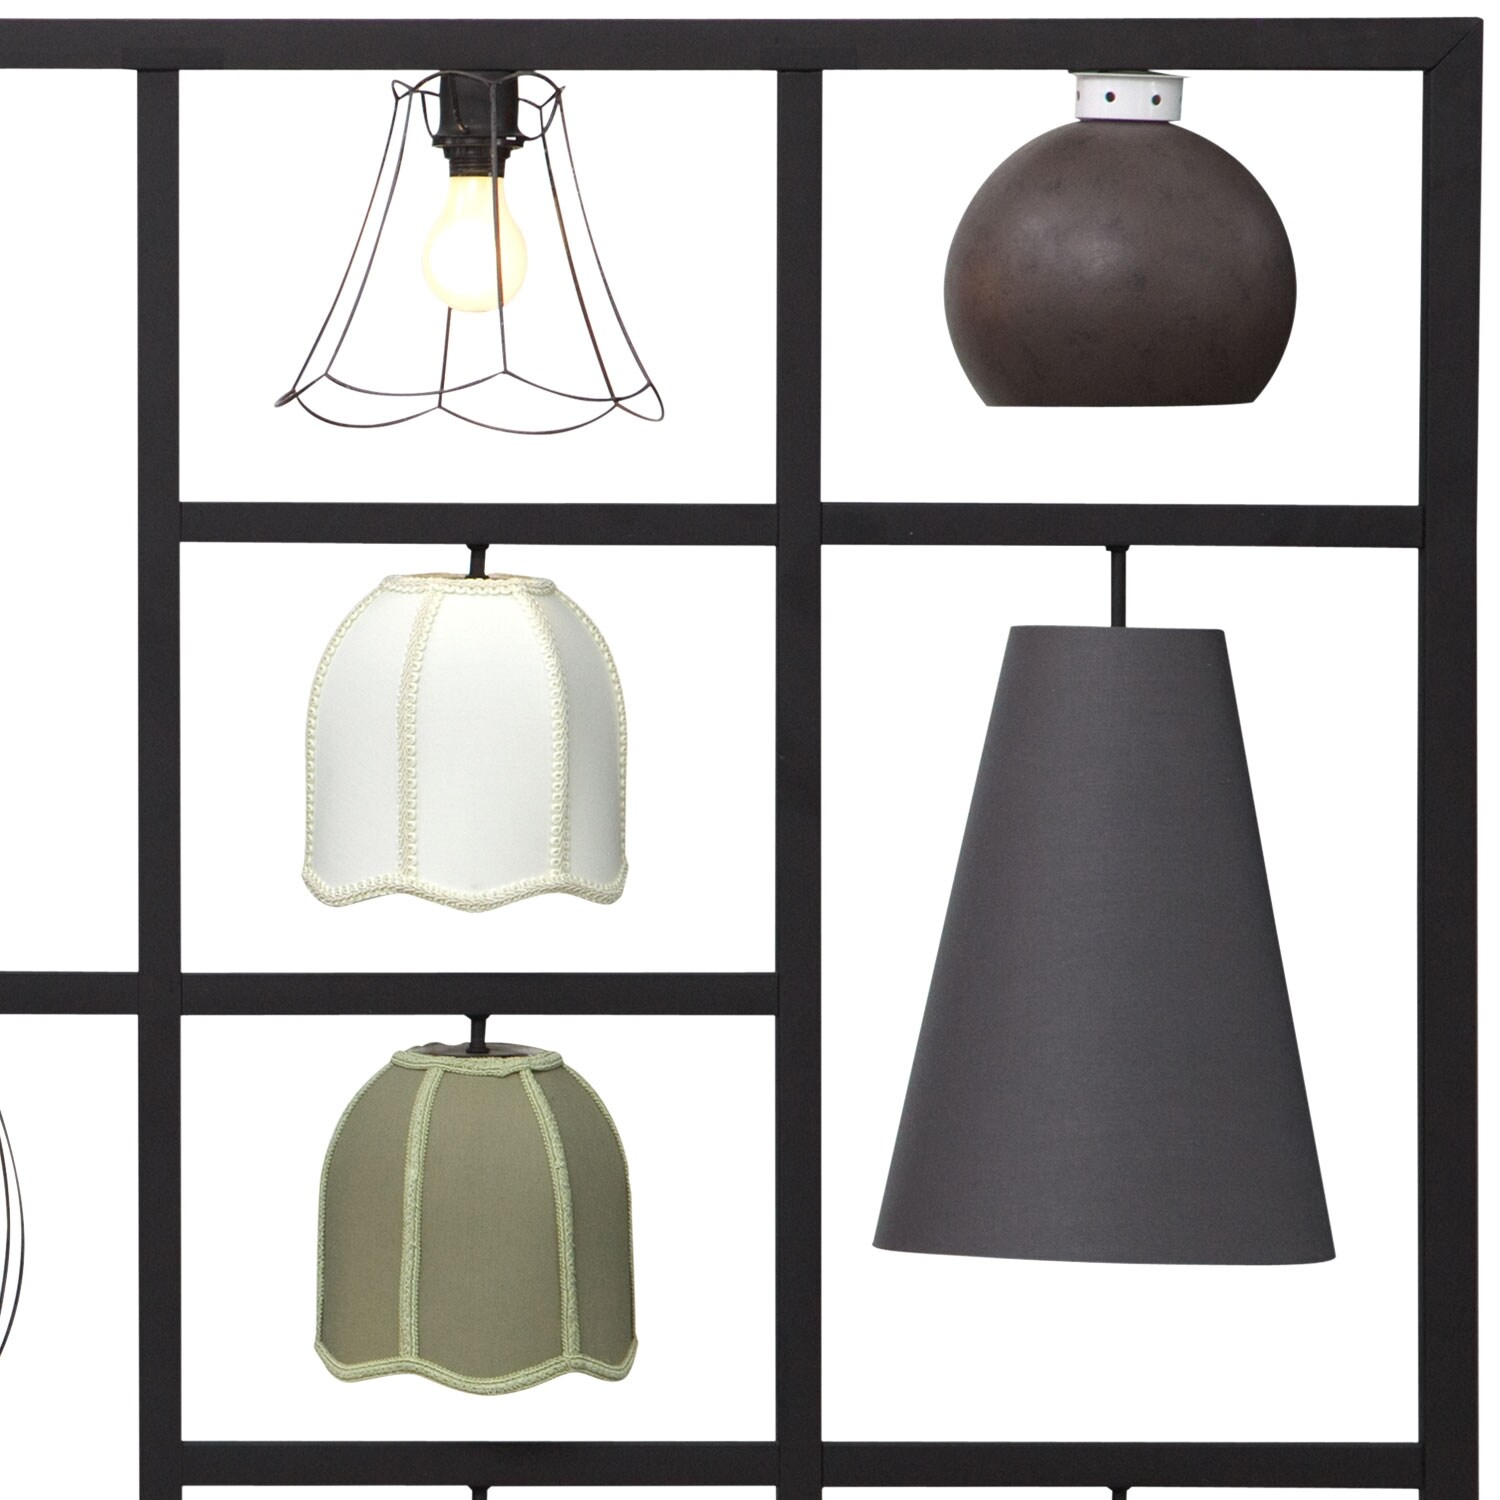 Wall Decor Lamps : Lamps decorative accents wall d?cor american